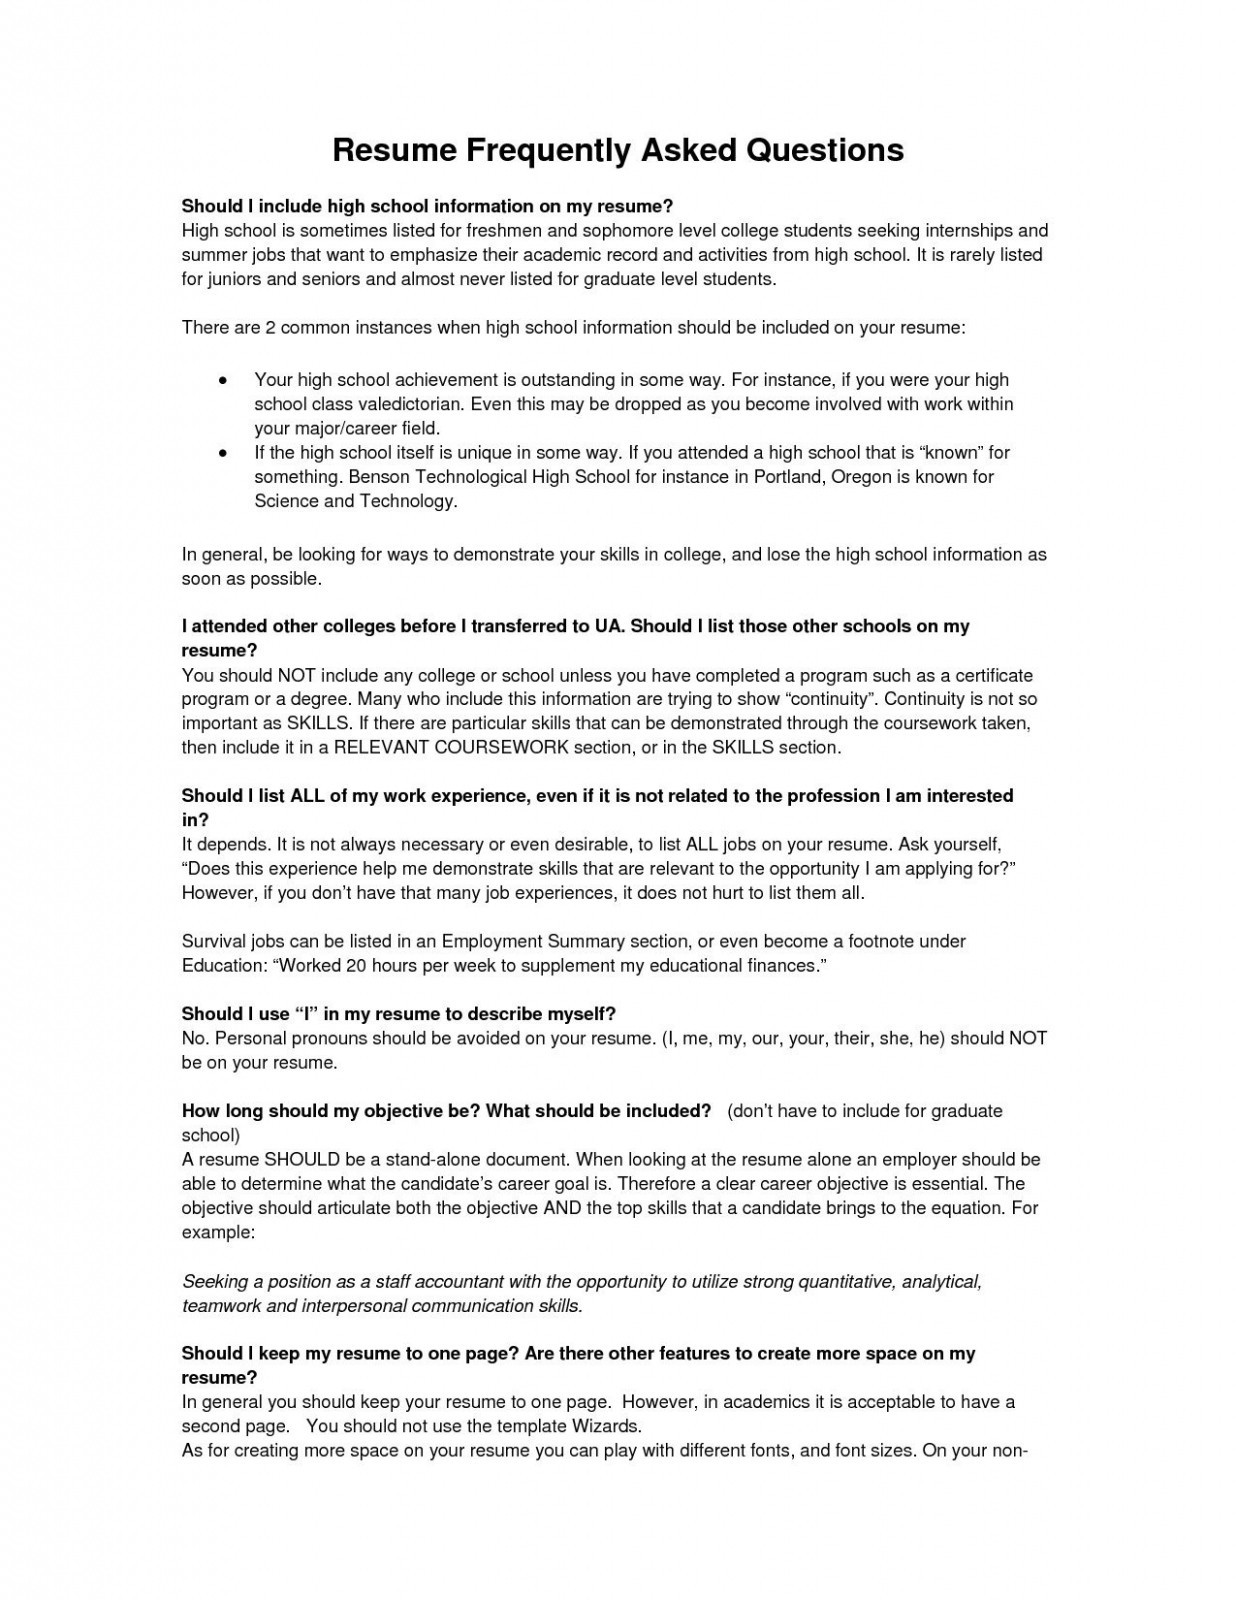 Describe Yourself In Resume - Greatest Resume or Cv for Graduate School Meant for Fresher Job Cv